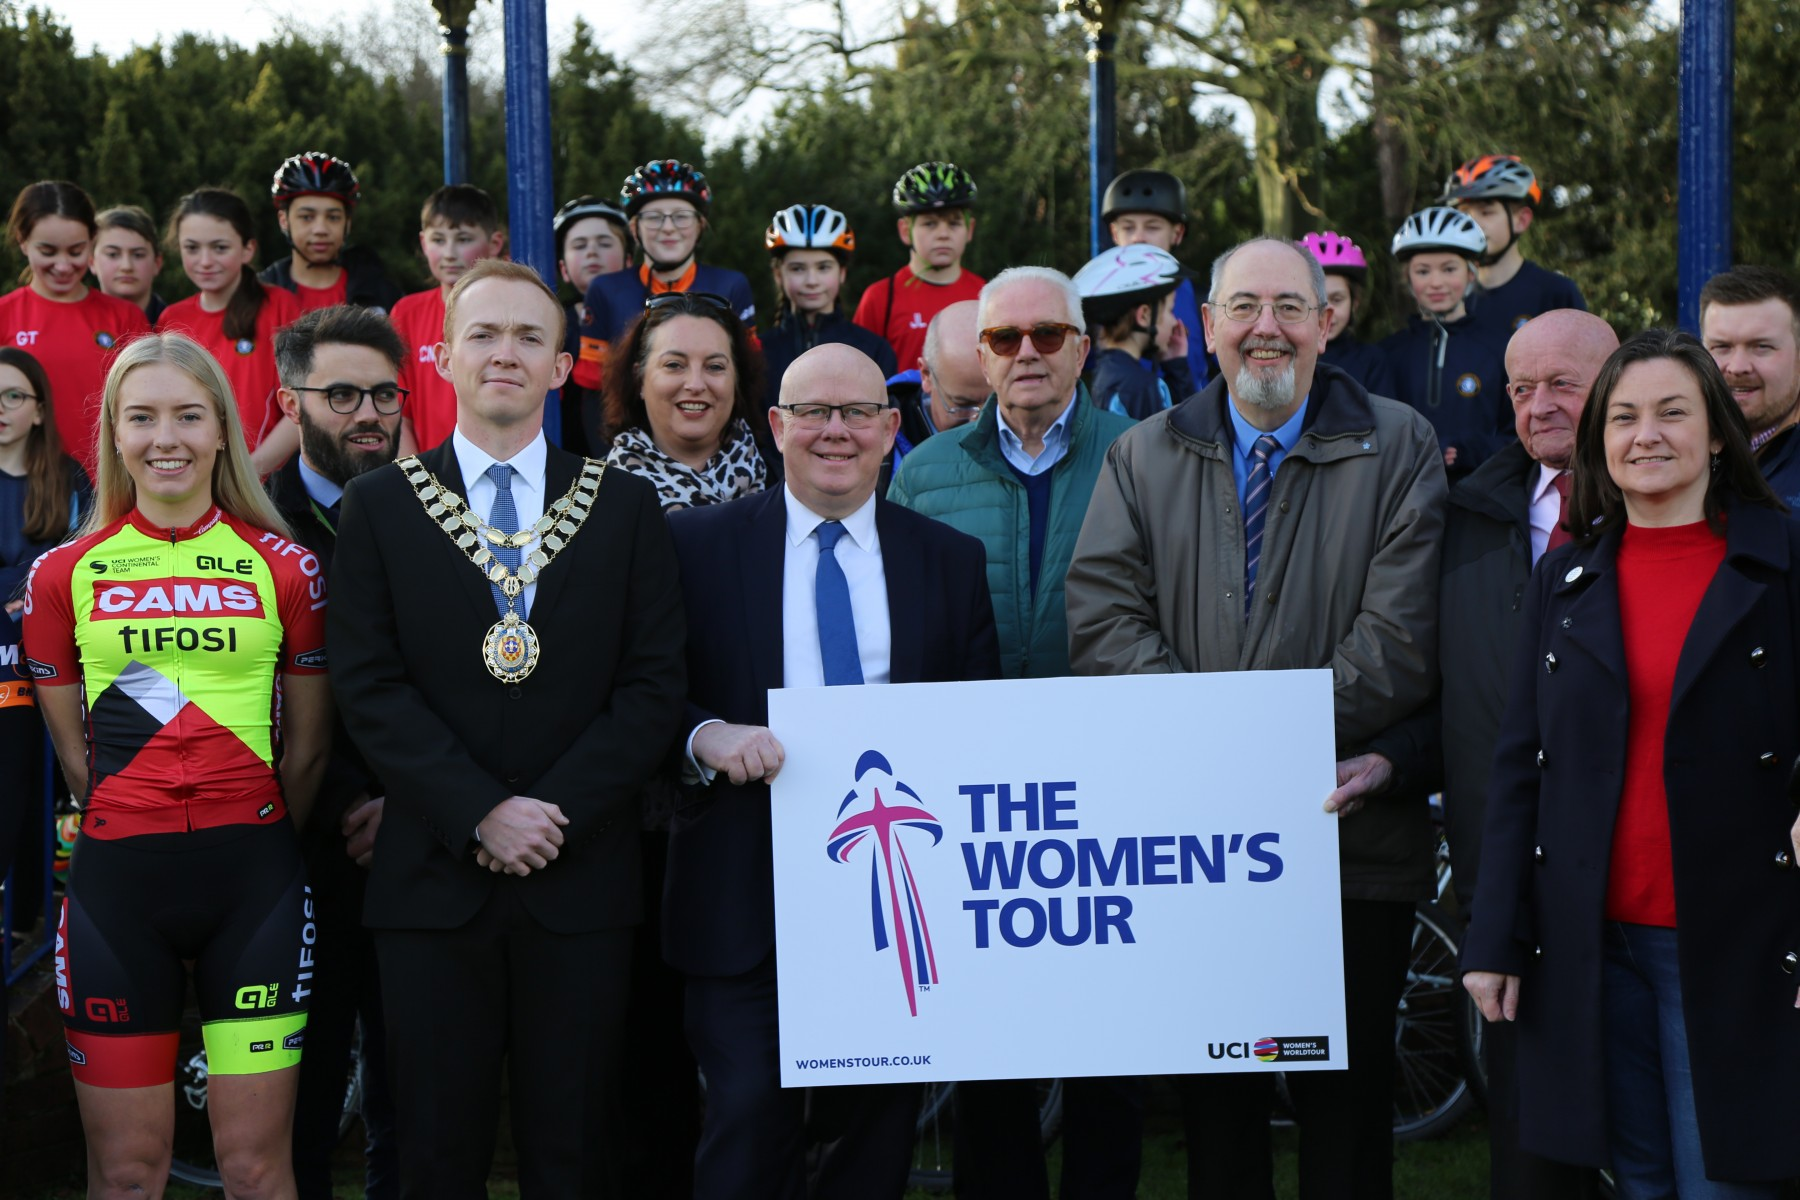 Photo - The Womens Tour - BICESTER 01